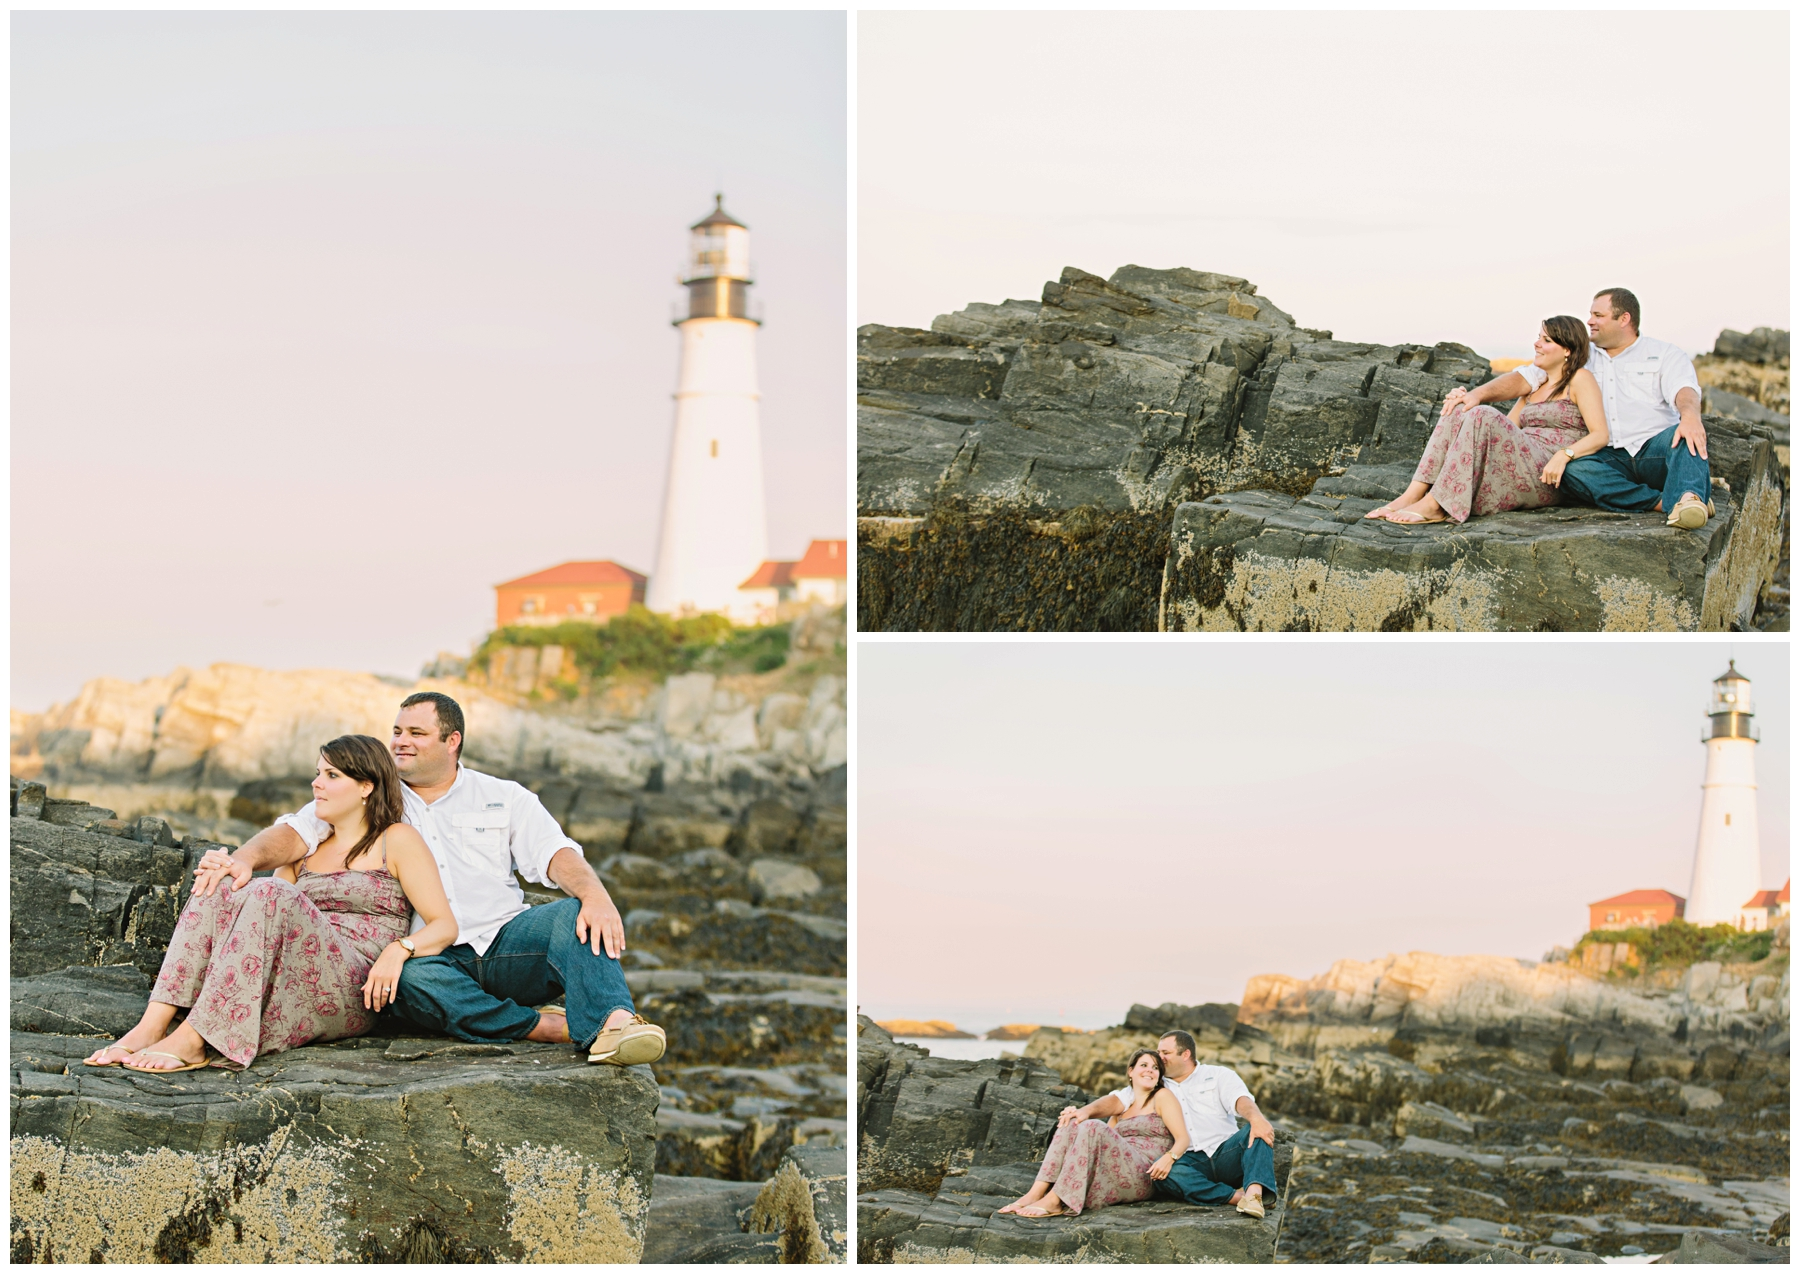 Maine_Photographer_Engagements_FortWilliams_PortlandHeadLight_lighthouse_coastal_seaside-011